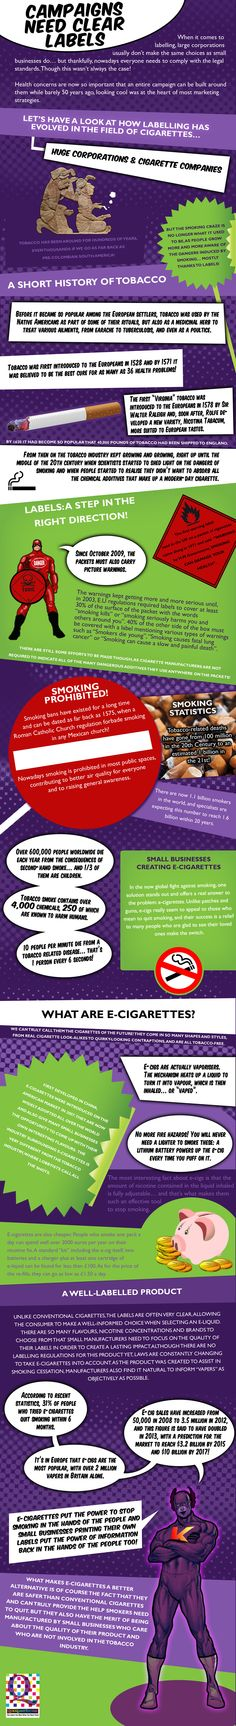 Label printing - a vital part of health campaigns - This infographic shows clearly what an important role label printing has played historically in health campaigns such as encouraging people to stop smoking. http://www.quicklabel.co.uk/